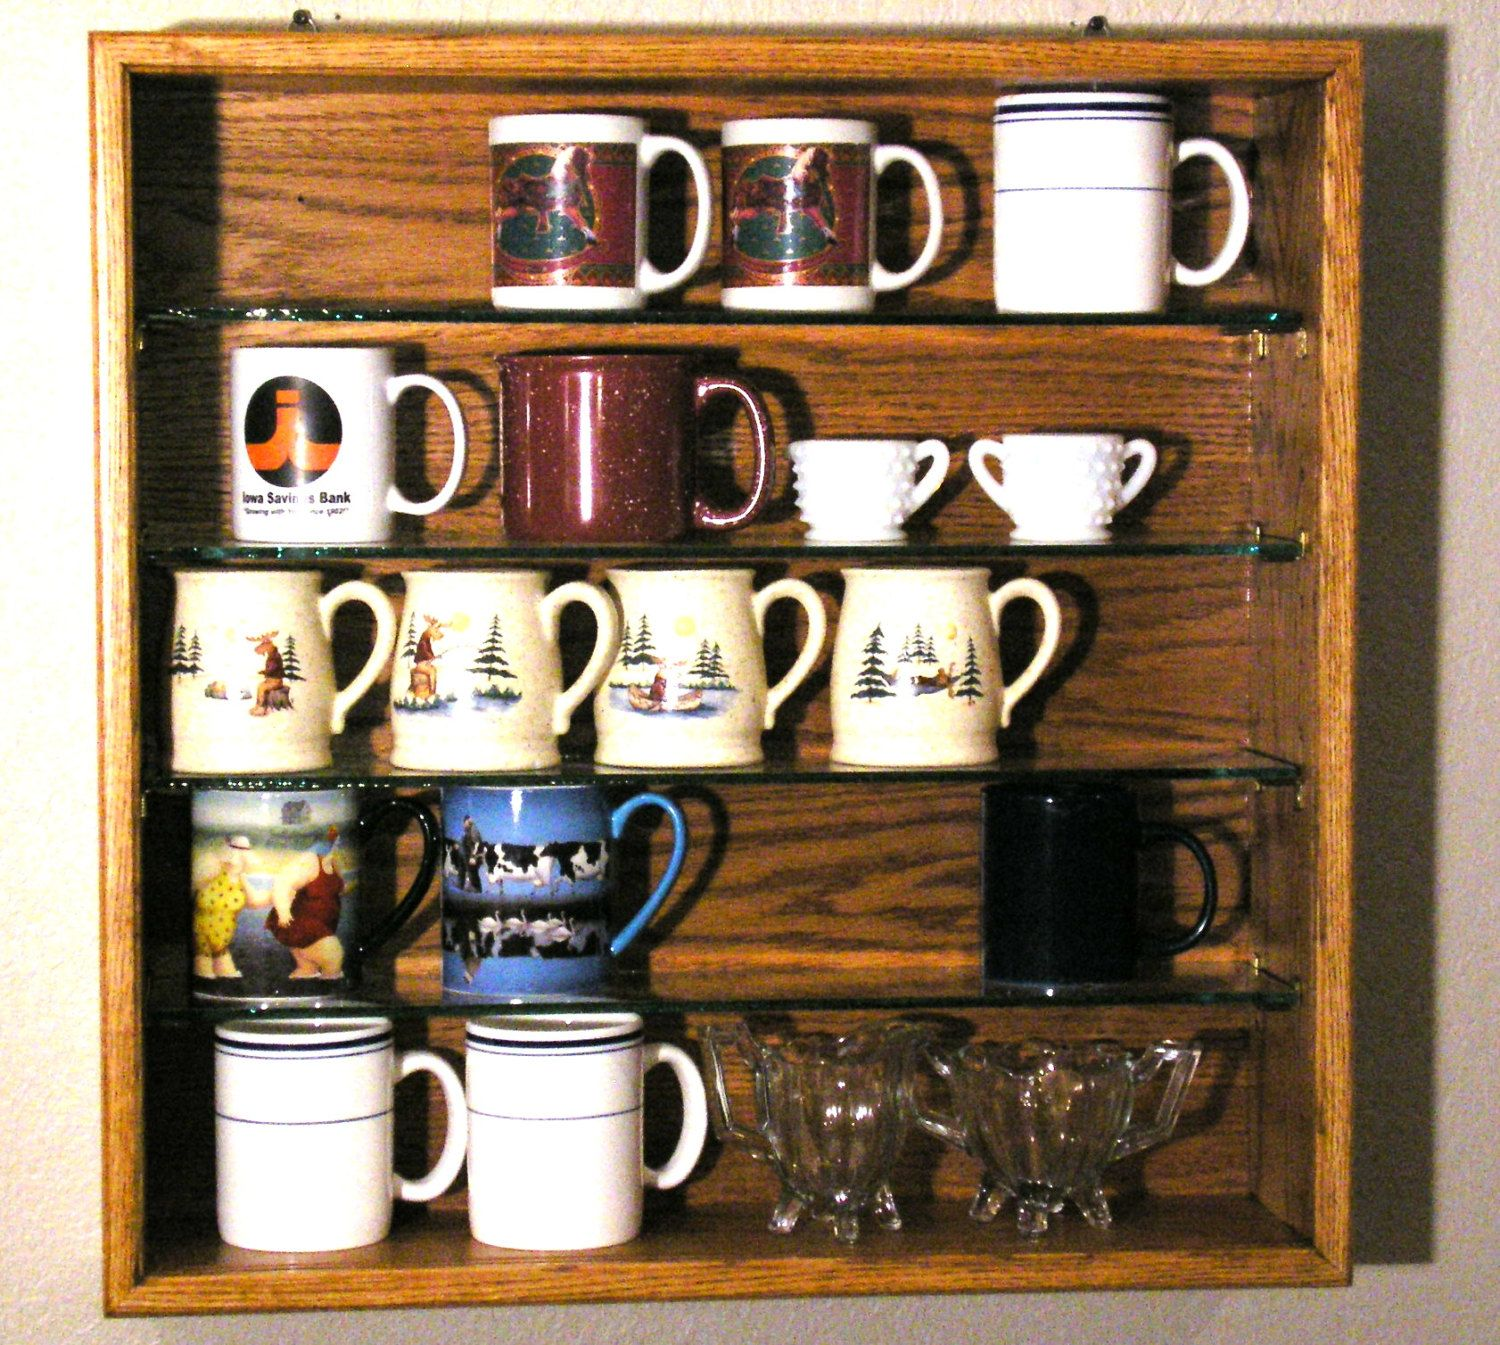 Coffee Mug Display Case 165 00 Via Etsy Mug Display Coffee Mug Display Mugs